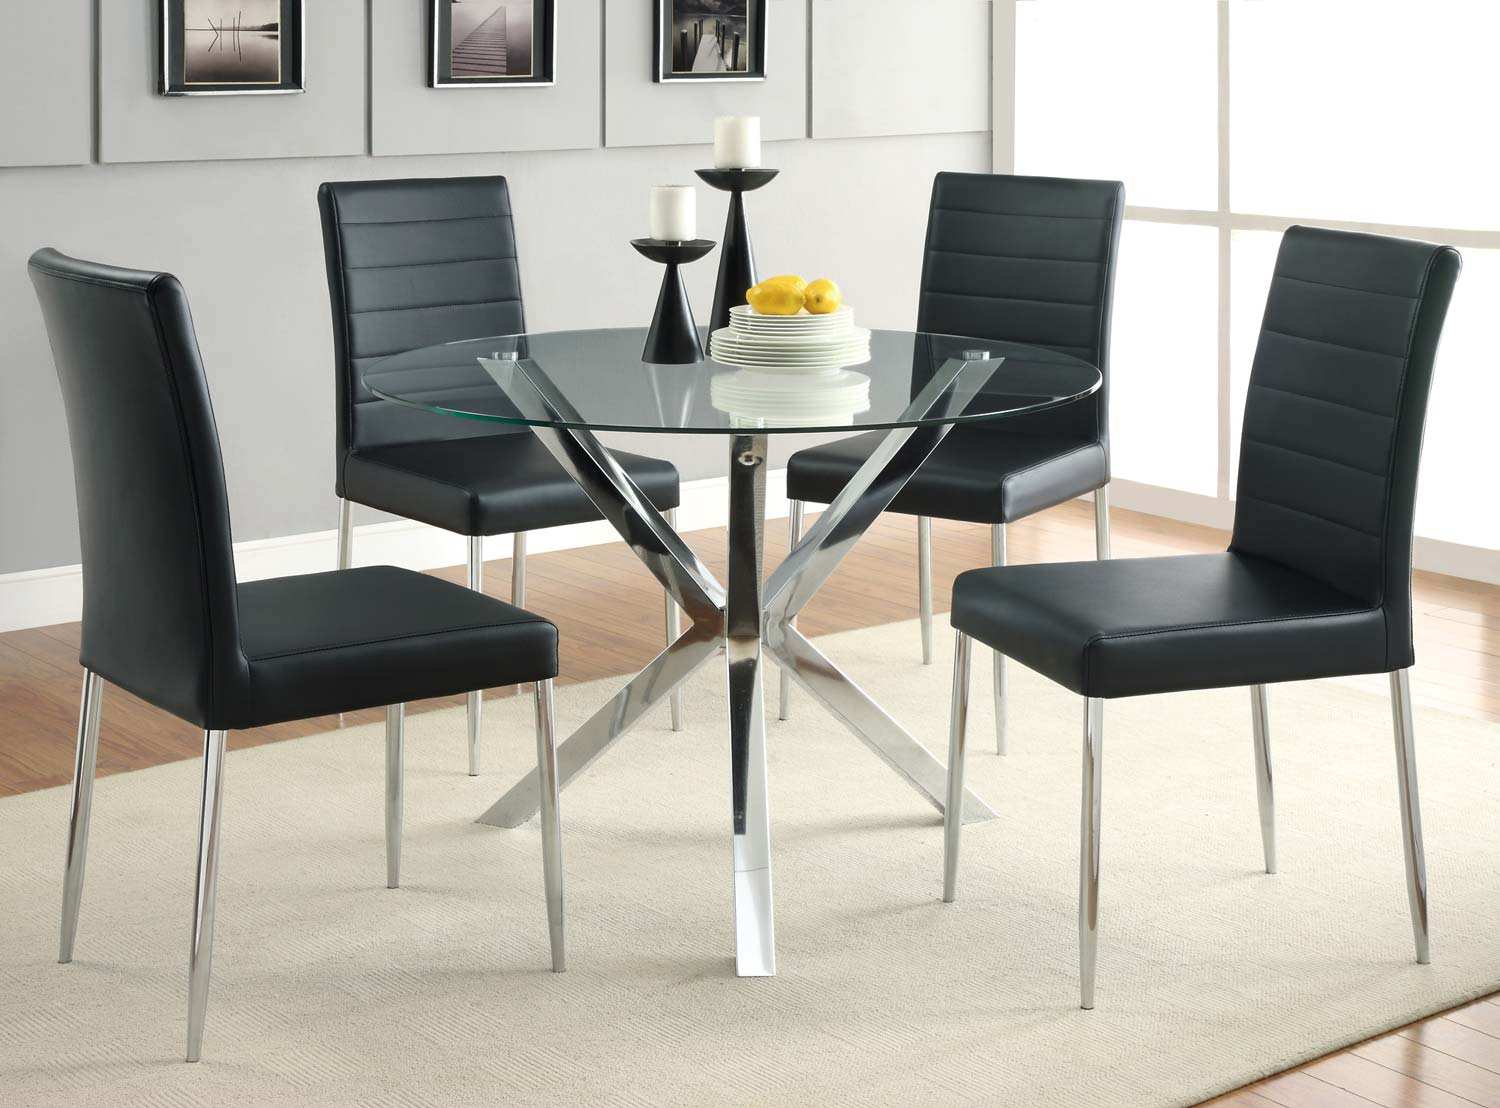 Coaster Vance Round Glass Dining Set Black Chair : CO 120760 BLK DinSet from www.homelement.com size 1500 x 1108 jpeg 137kB